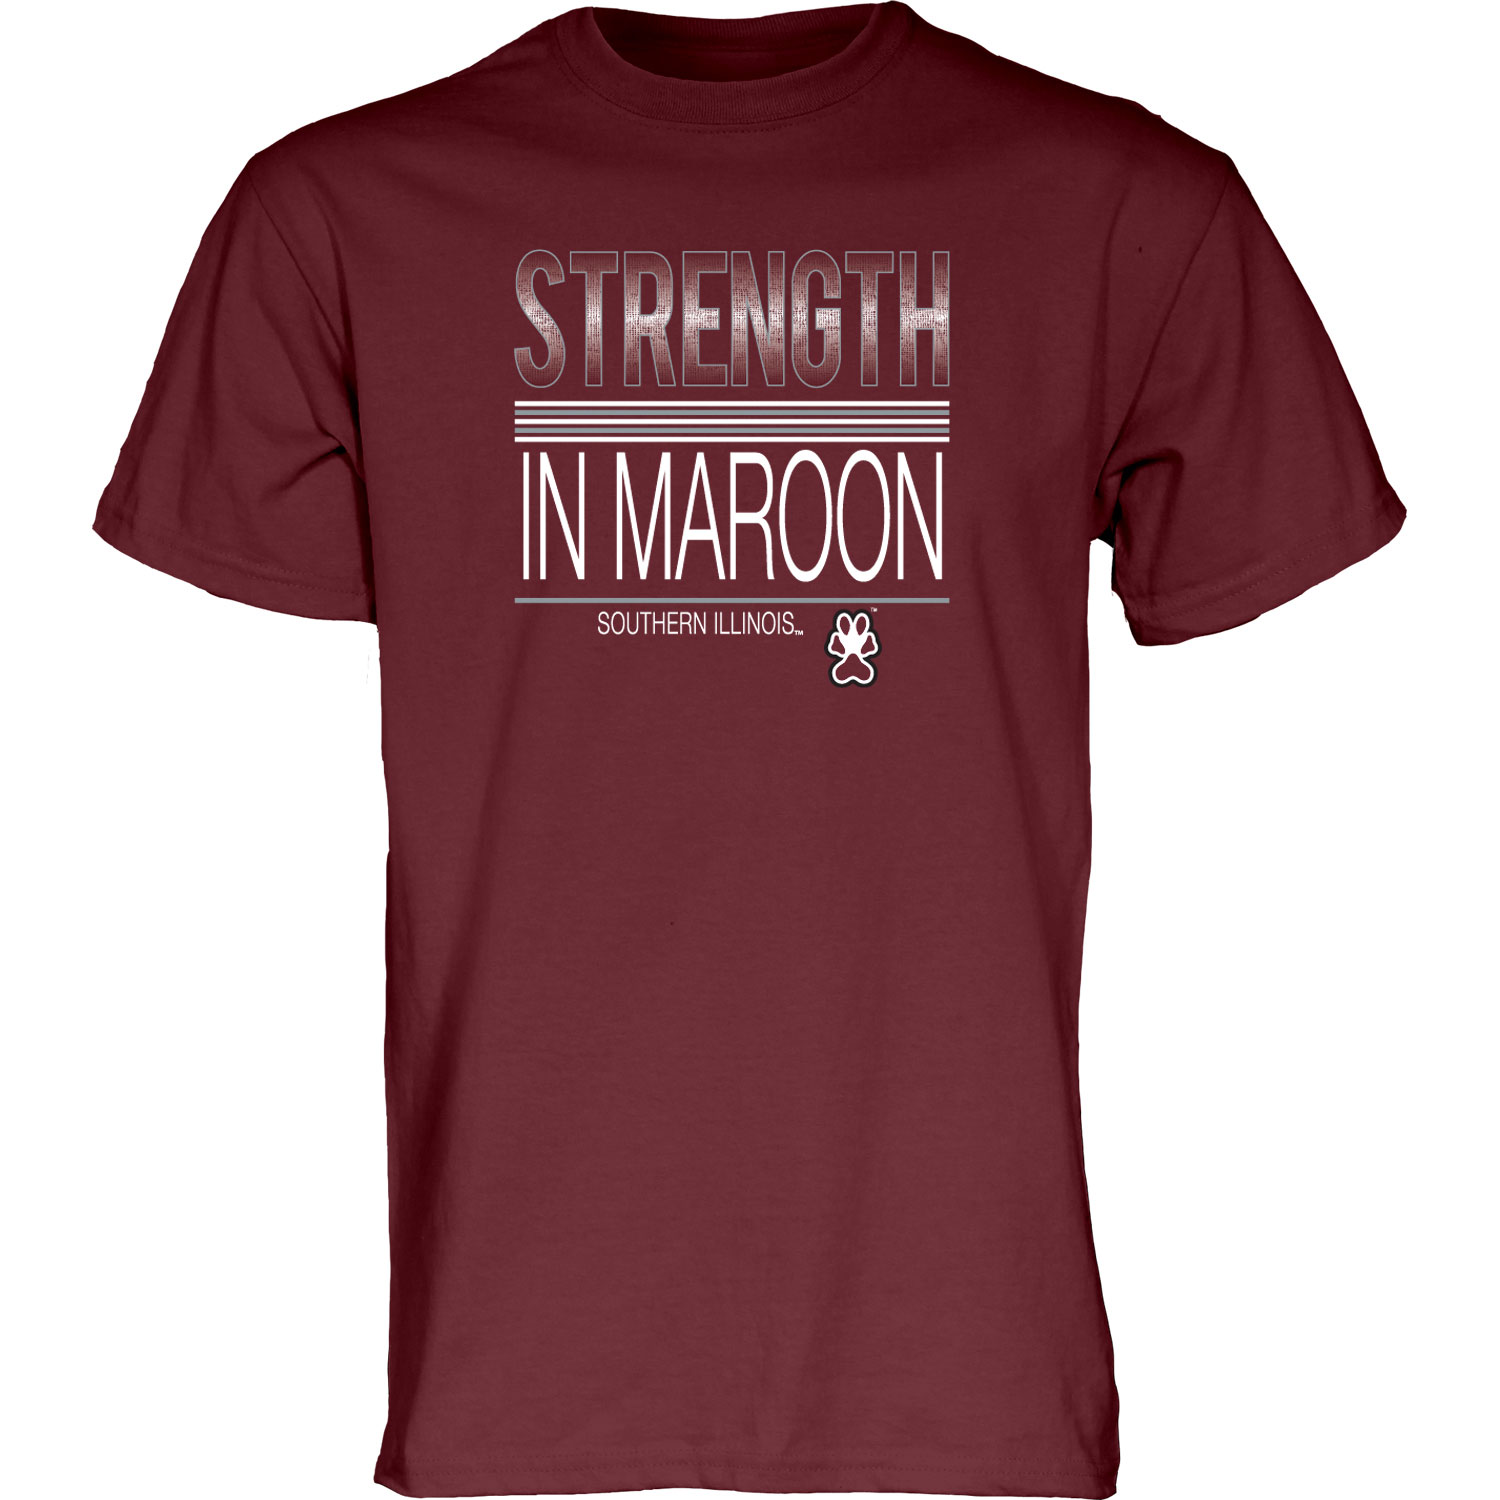 """Image for the BLUE 84® SOUTHERN ILLINOIS """"STRENGTH IN MAROON"""" T-SHIRT product"""